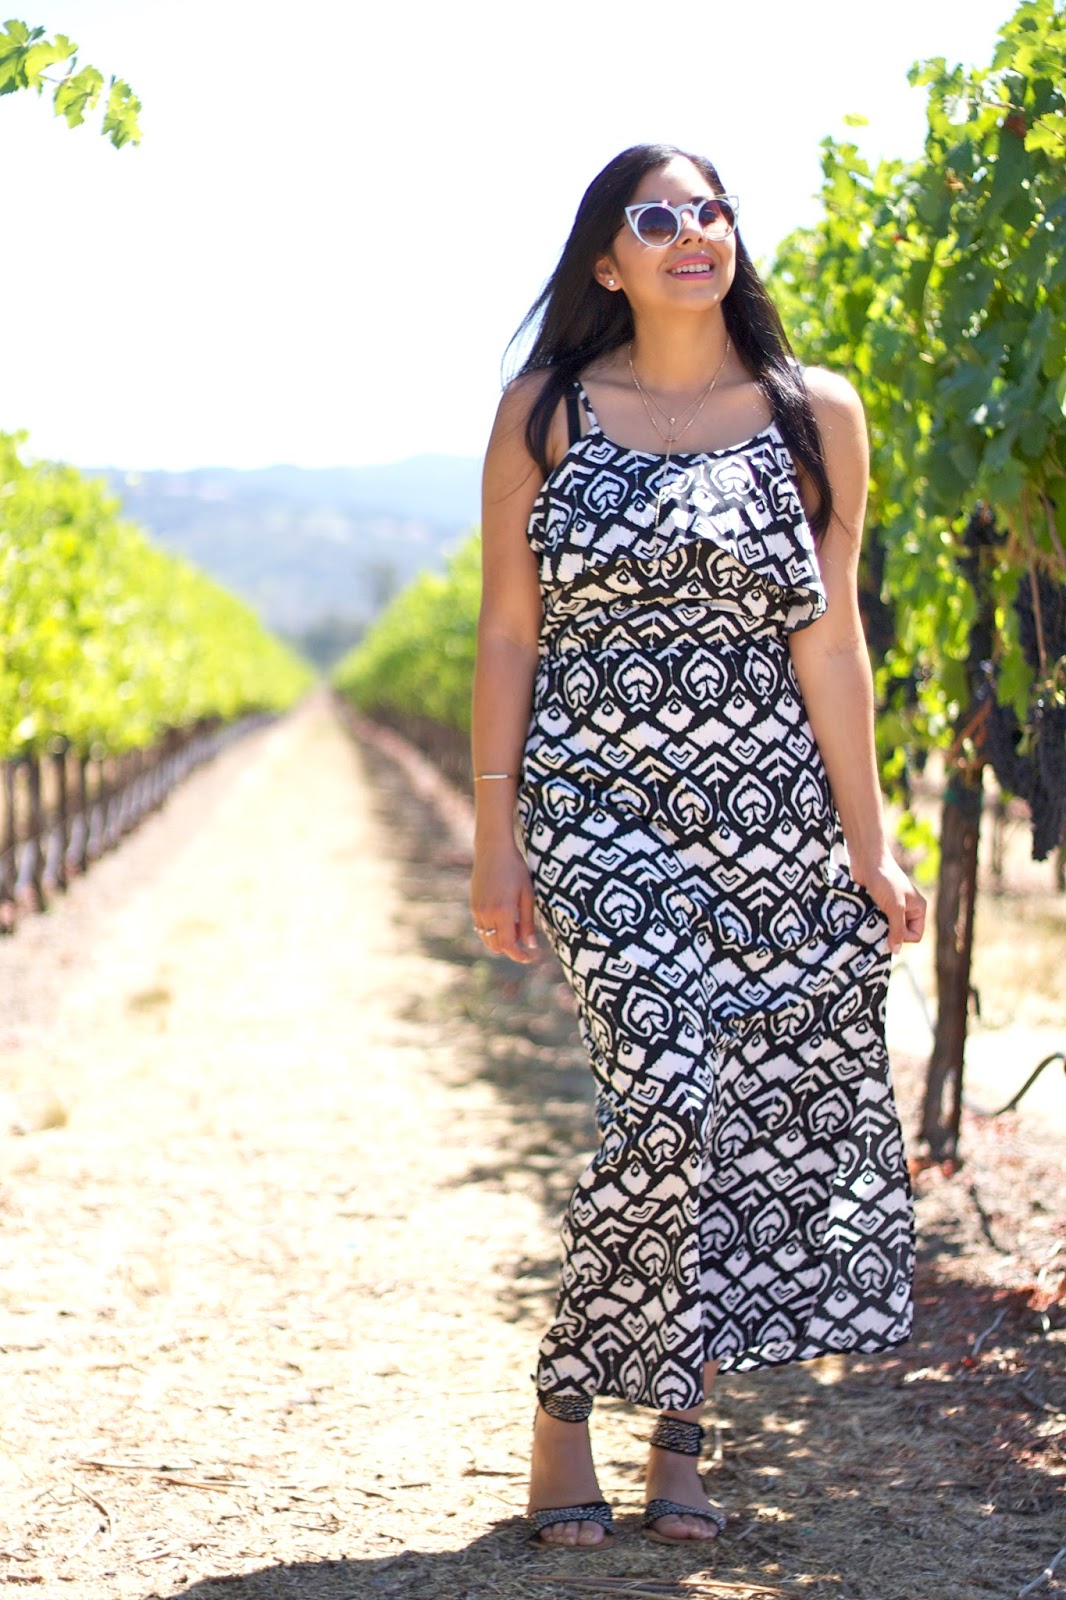 San Diego Blogger, SD Style Bloggers, What to wear wine tasting, comfortable stylish outfit, maxi dress outfit